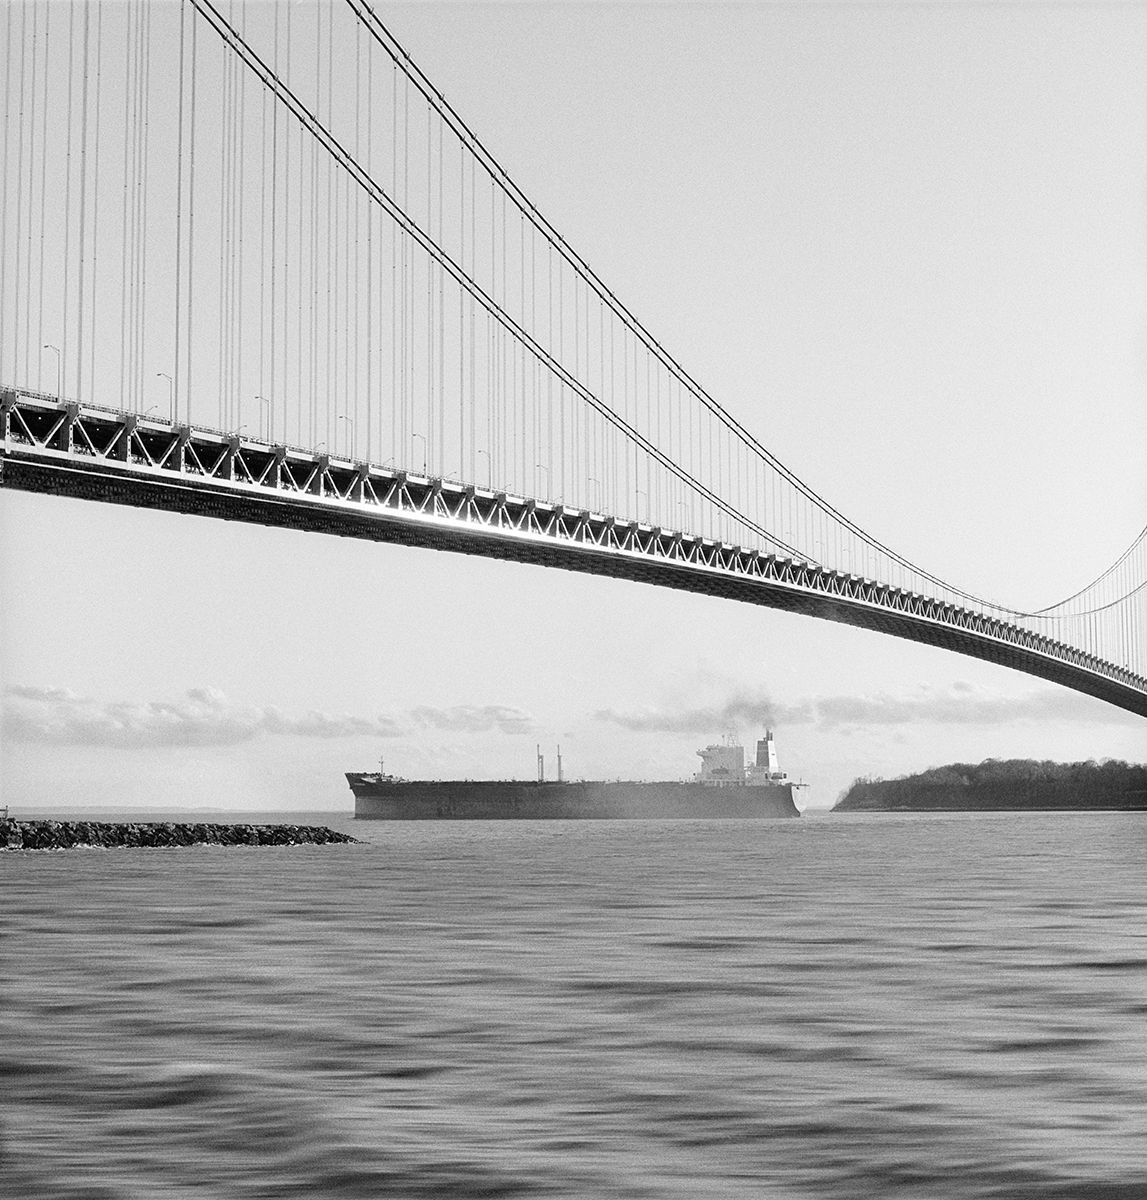 Bridge & Ship Flat copy.jpg